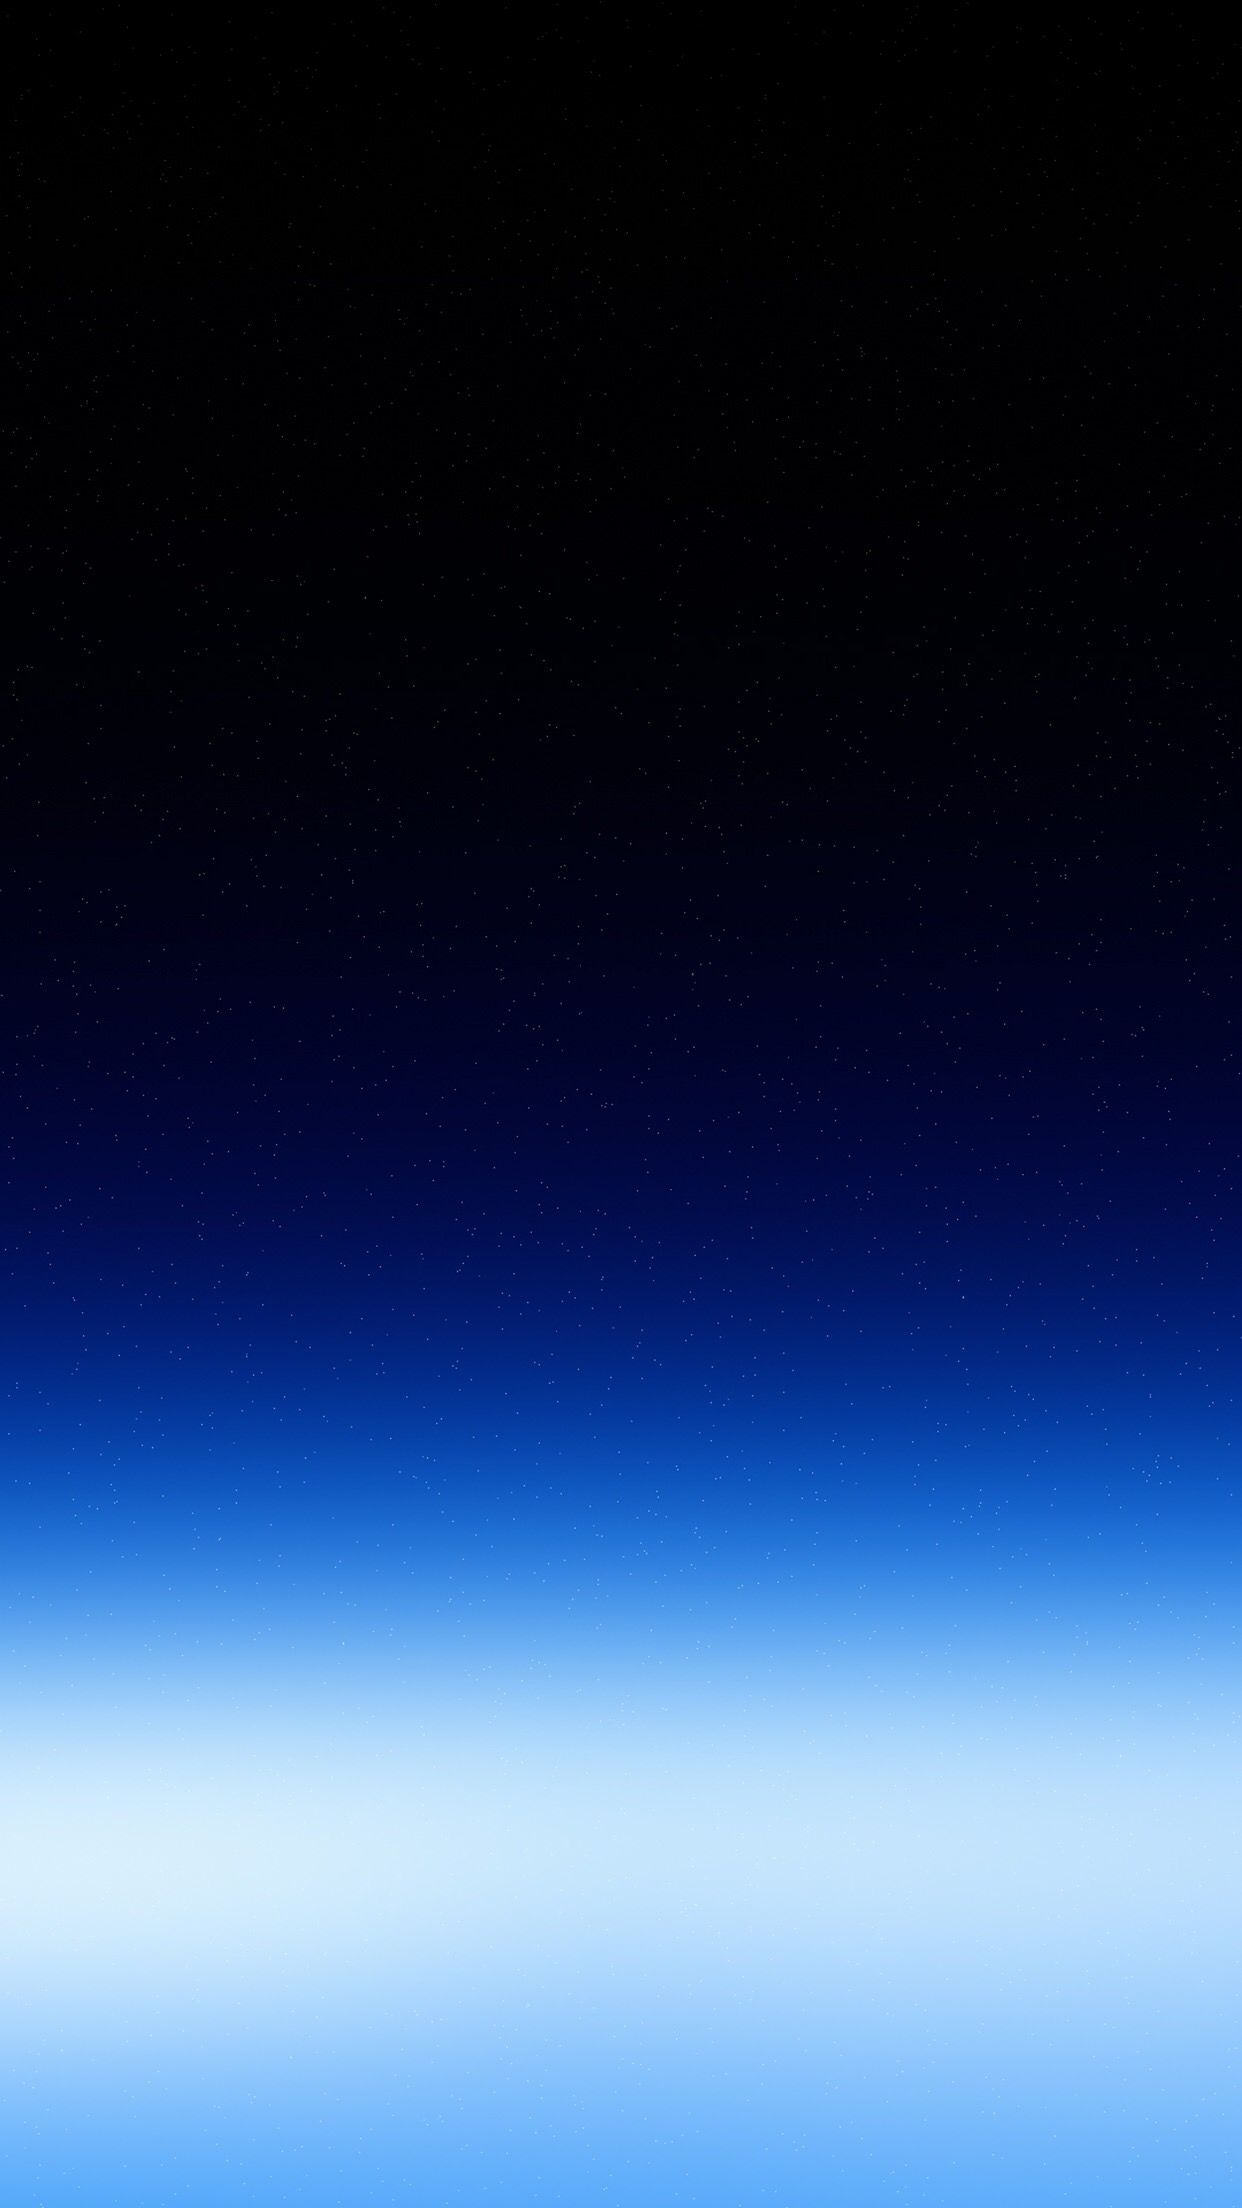 Wallpaper that hides the notch Backgrounds in 2019 Wallpaper 1242x2208